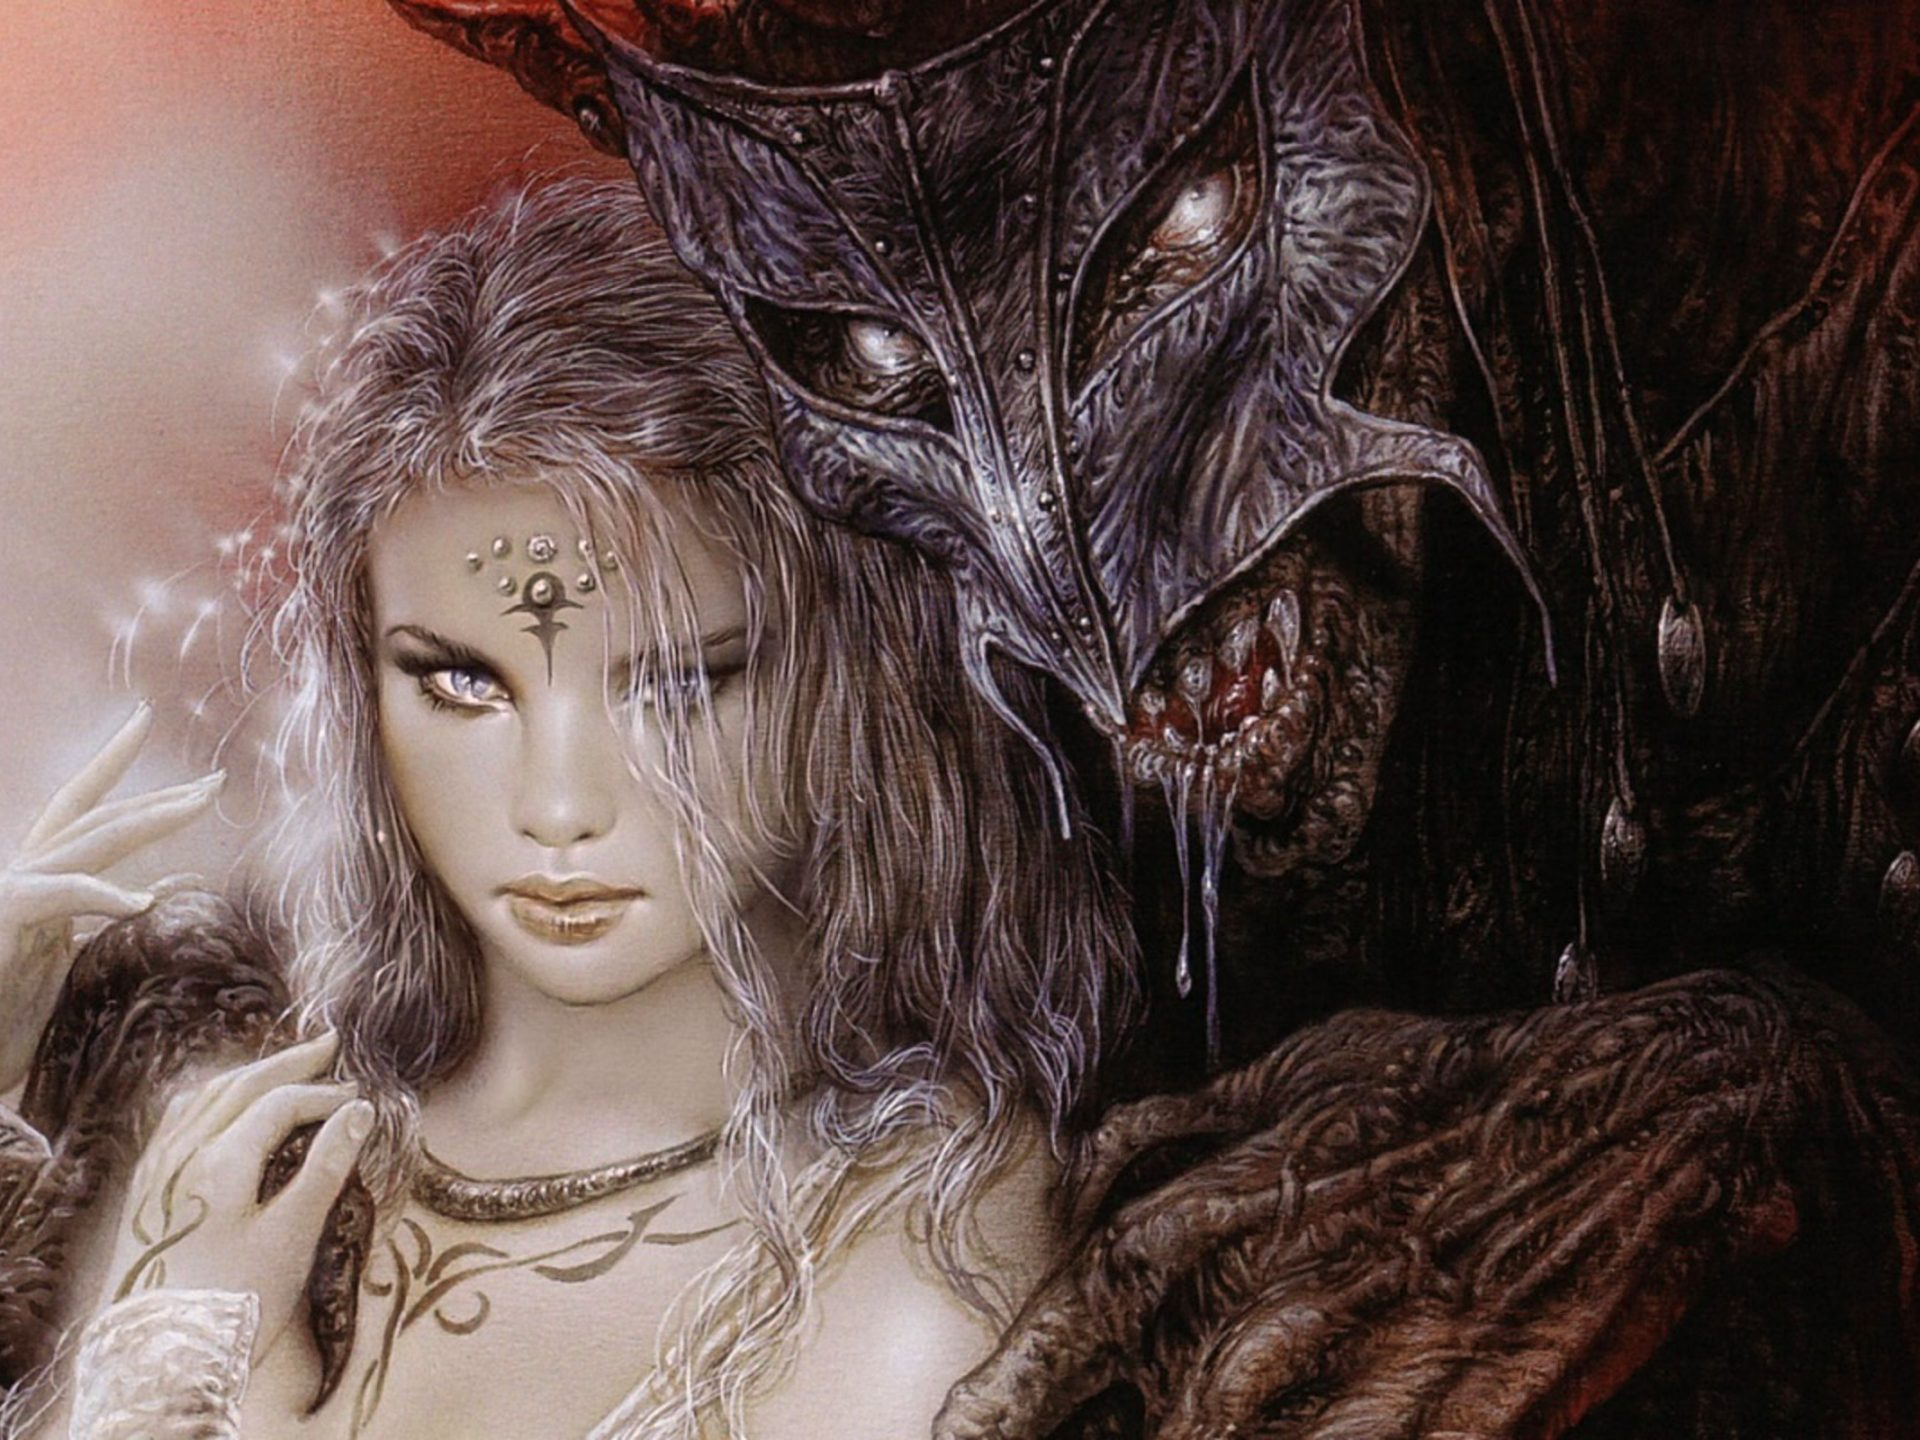 Iphone 5 Wallpaper For Girls Luis Royo Fantasy Dark Horror Demon Women Art Mask Monster